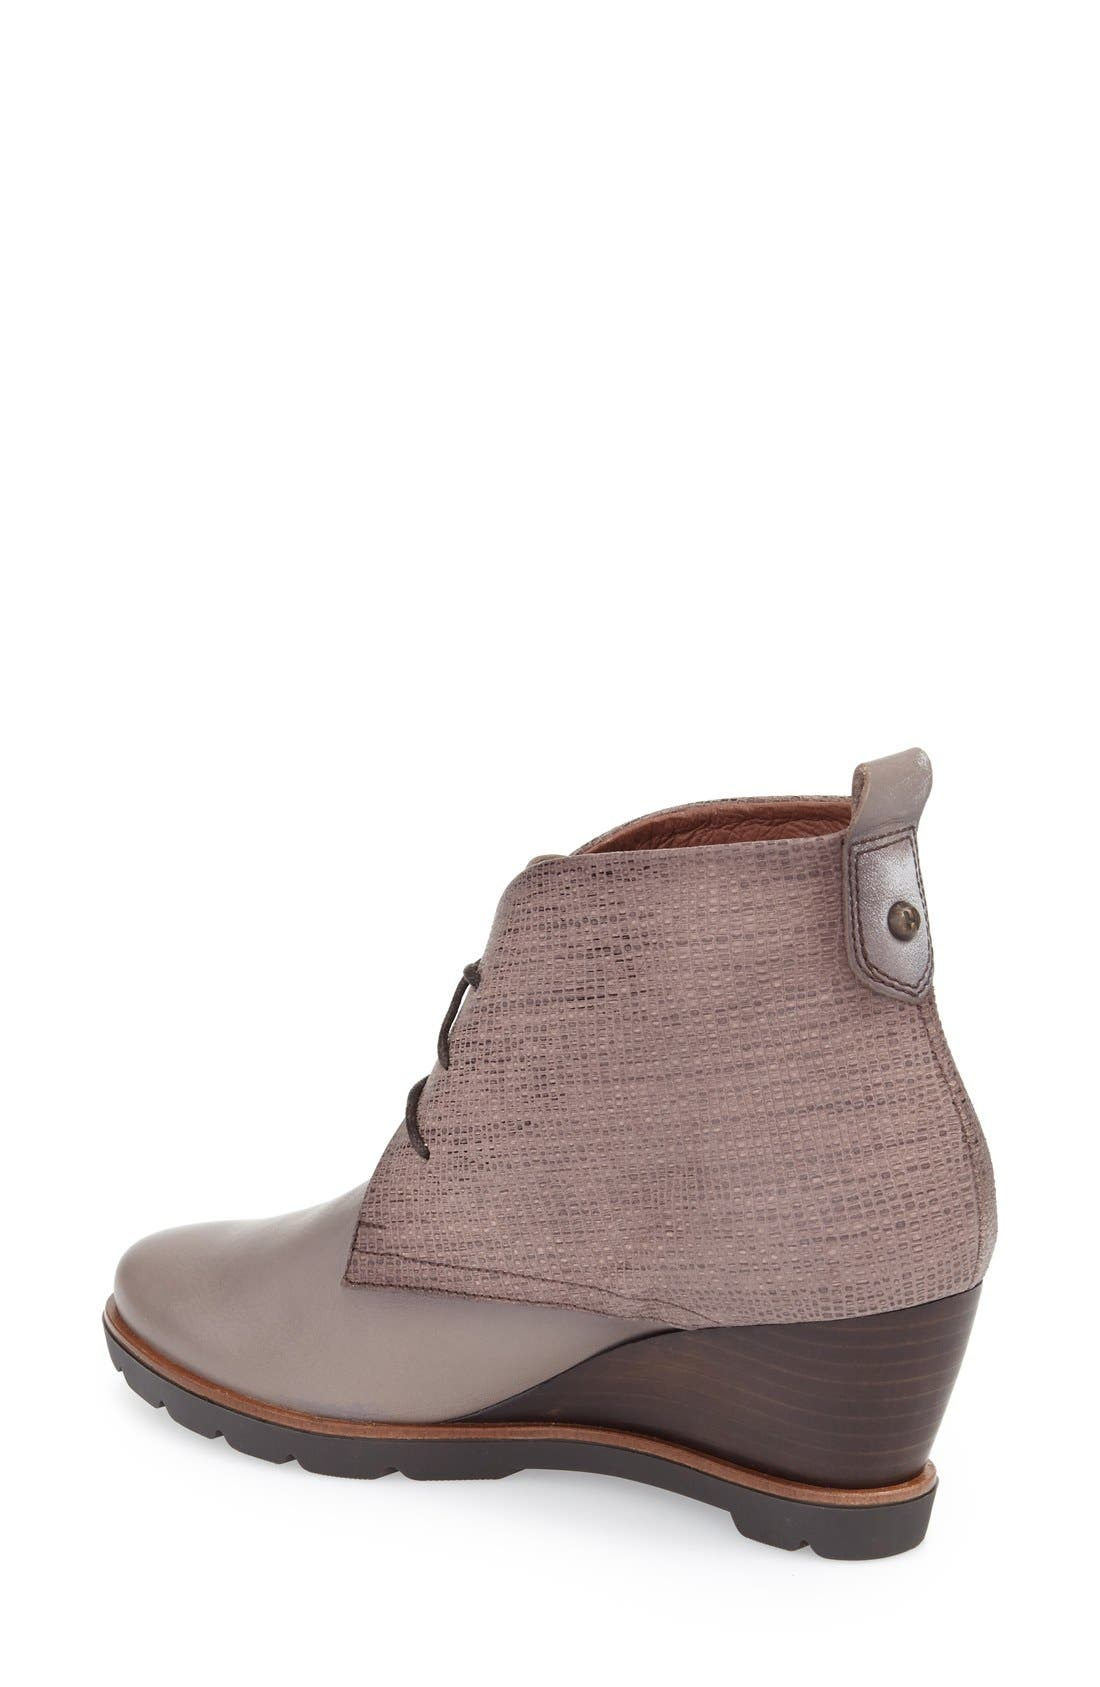 Alternate Image 2  - Hispanitas 'Harmonie' Lace-Up Wedge Bootie (Women)